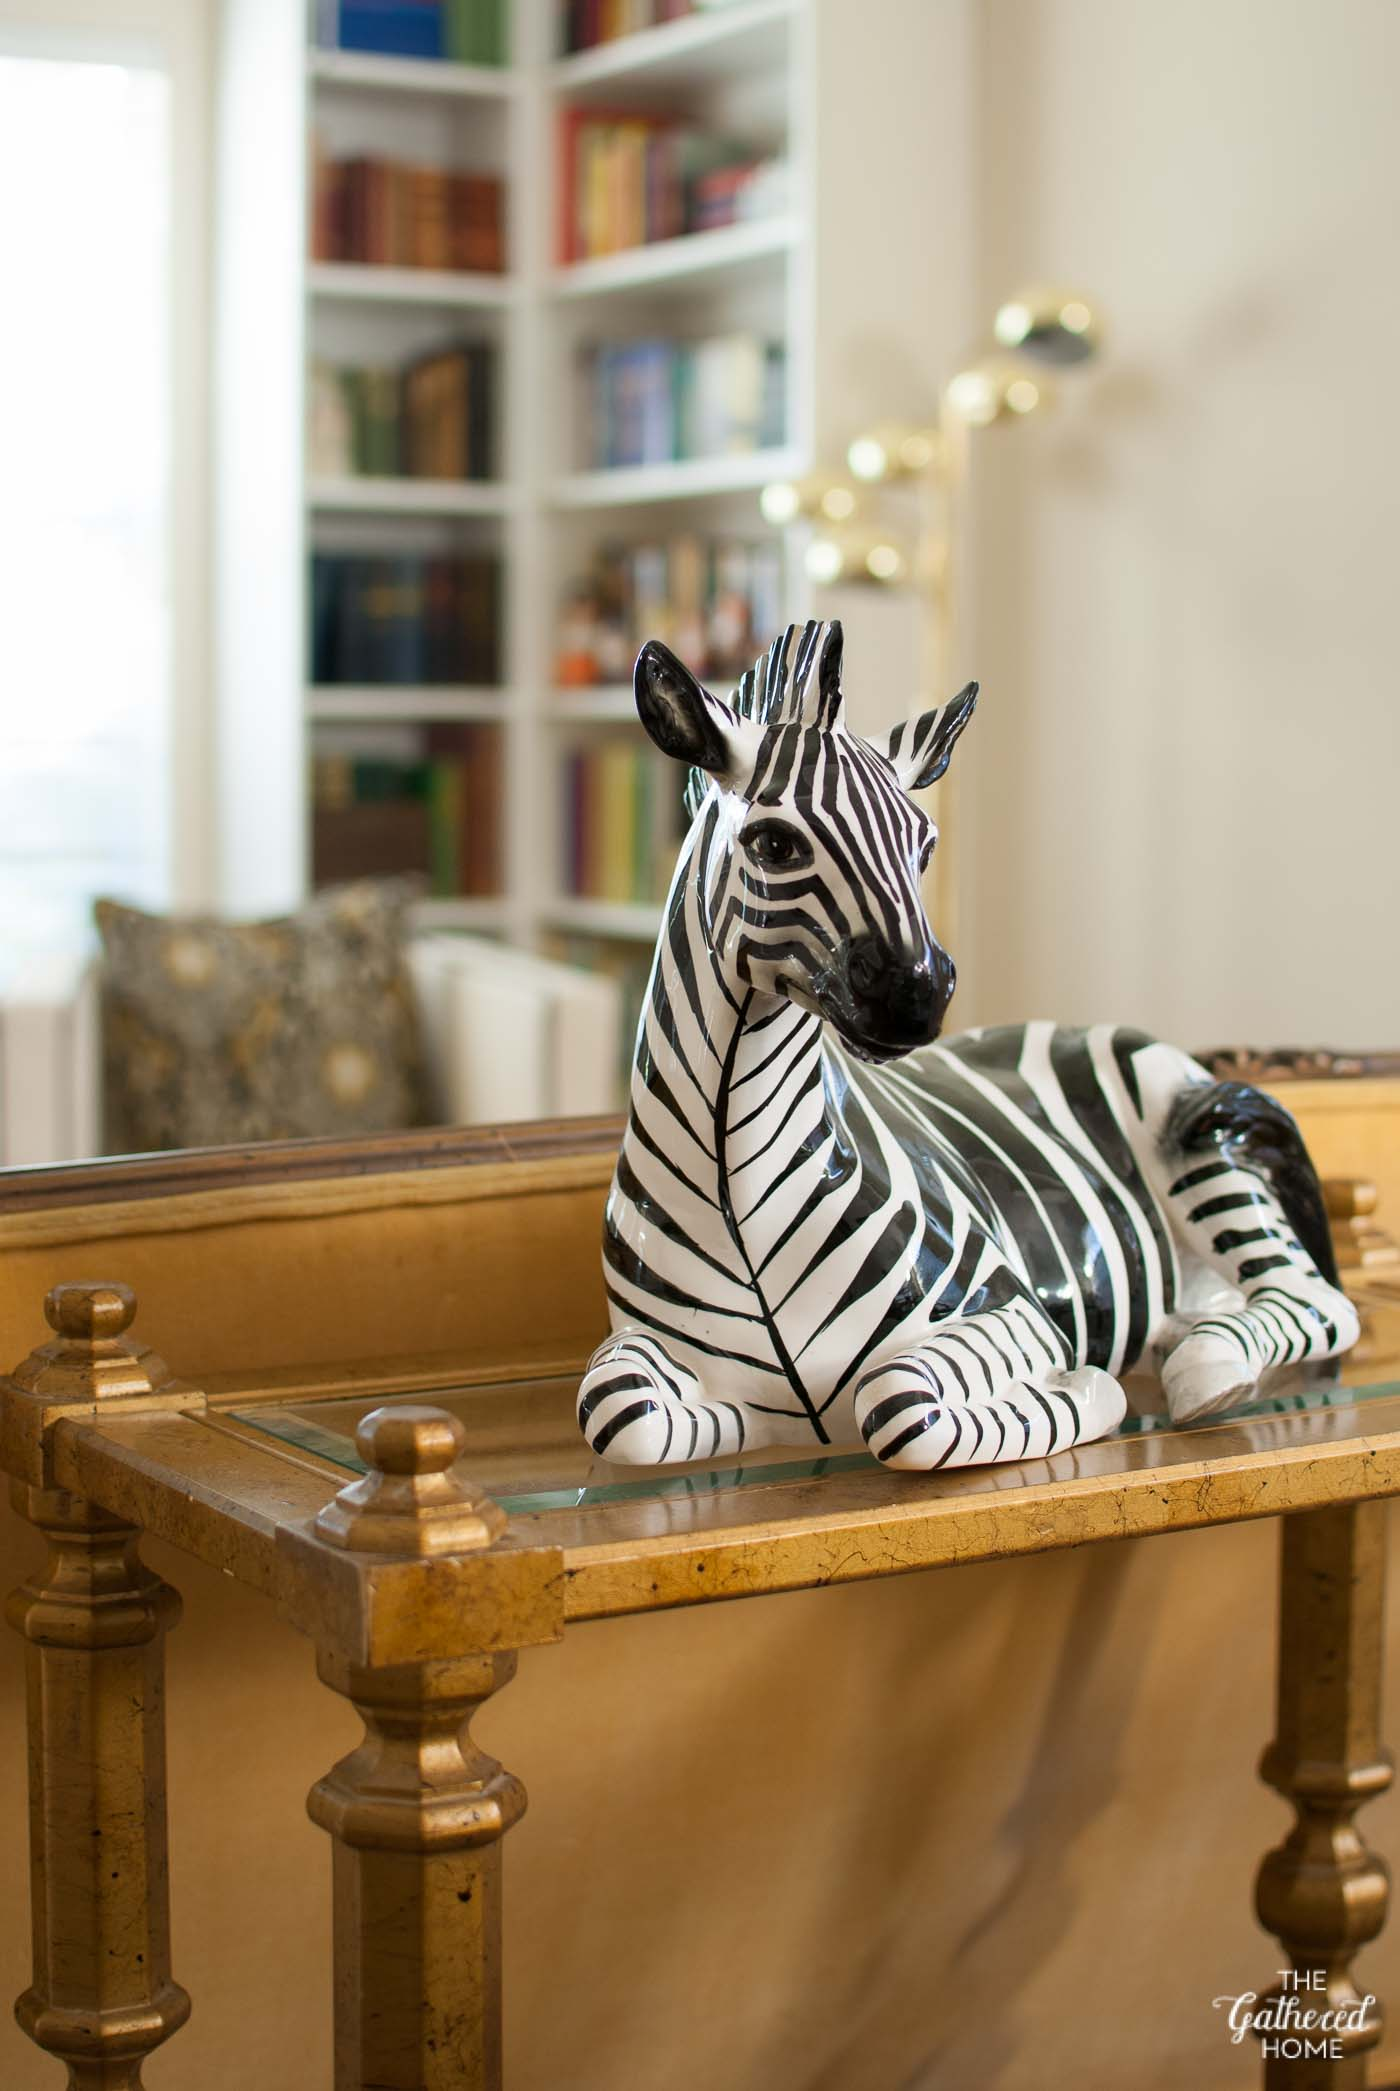 Vintage Ceramiz Zebra Statue On Gold Console Table